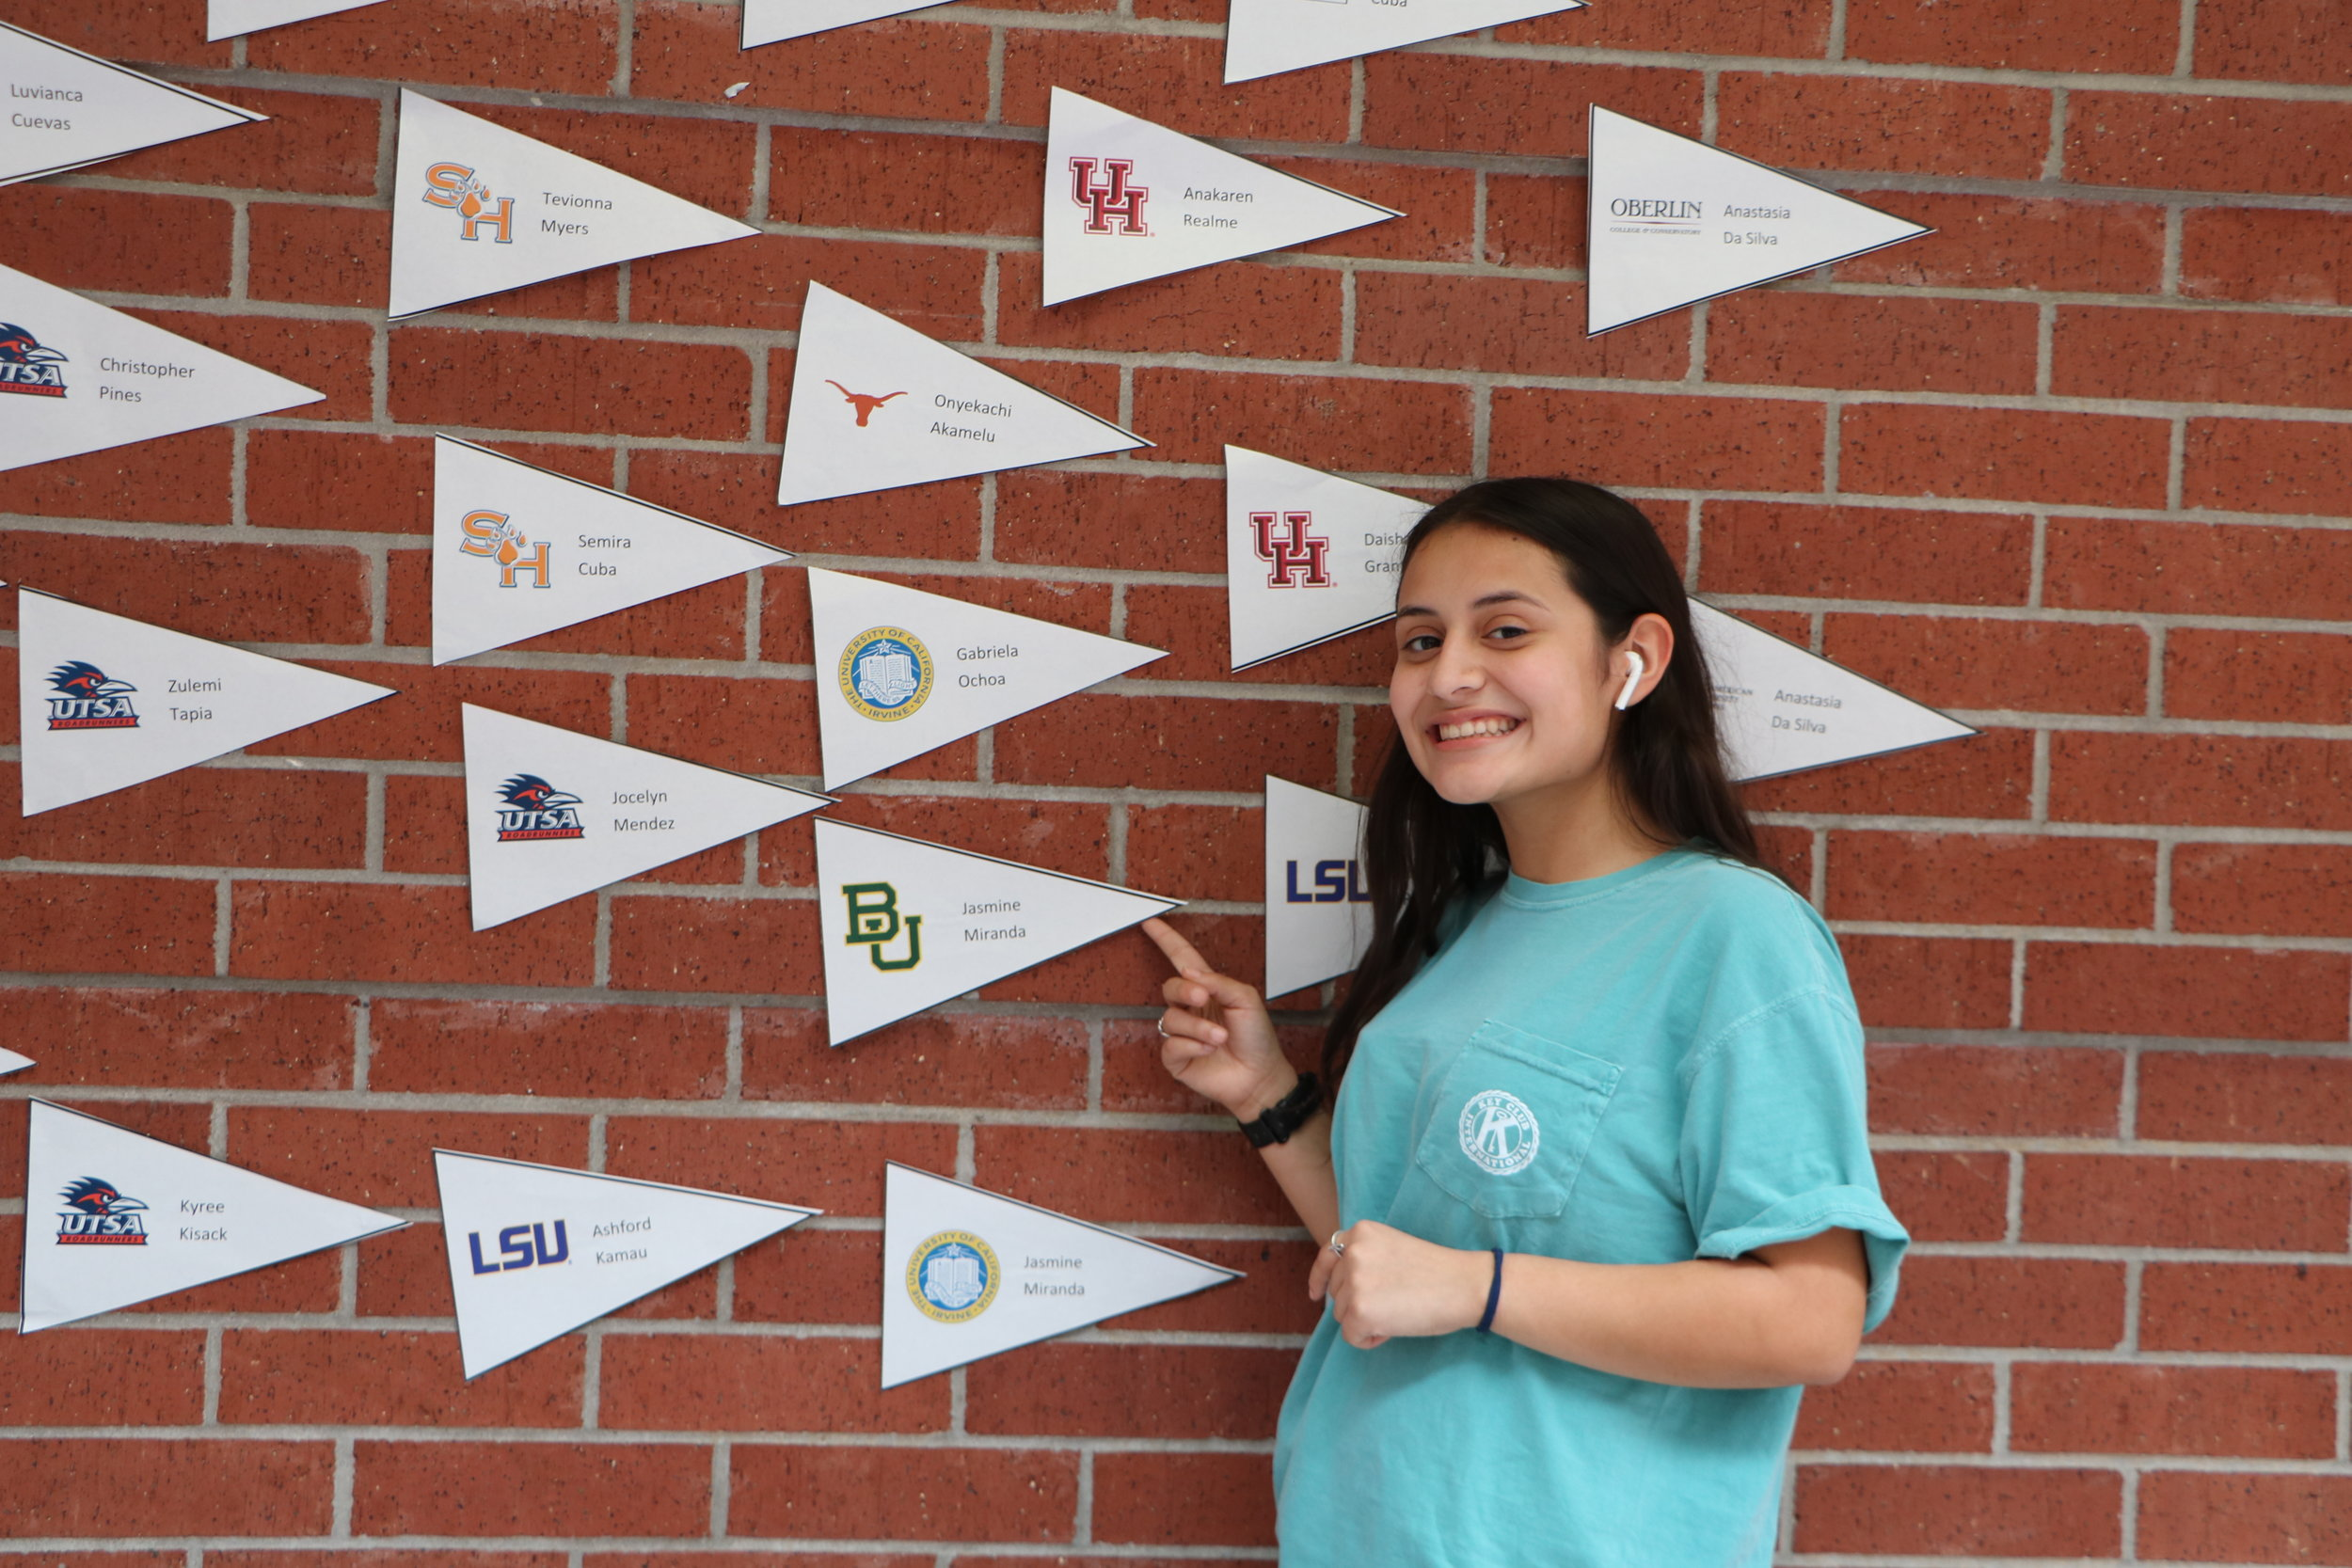 Jasmine Miranda narrows down her choices for college. (By Alissay Parra)